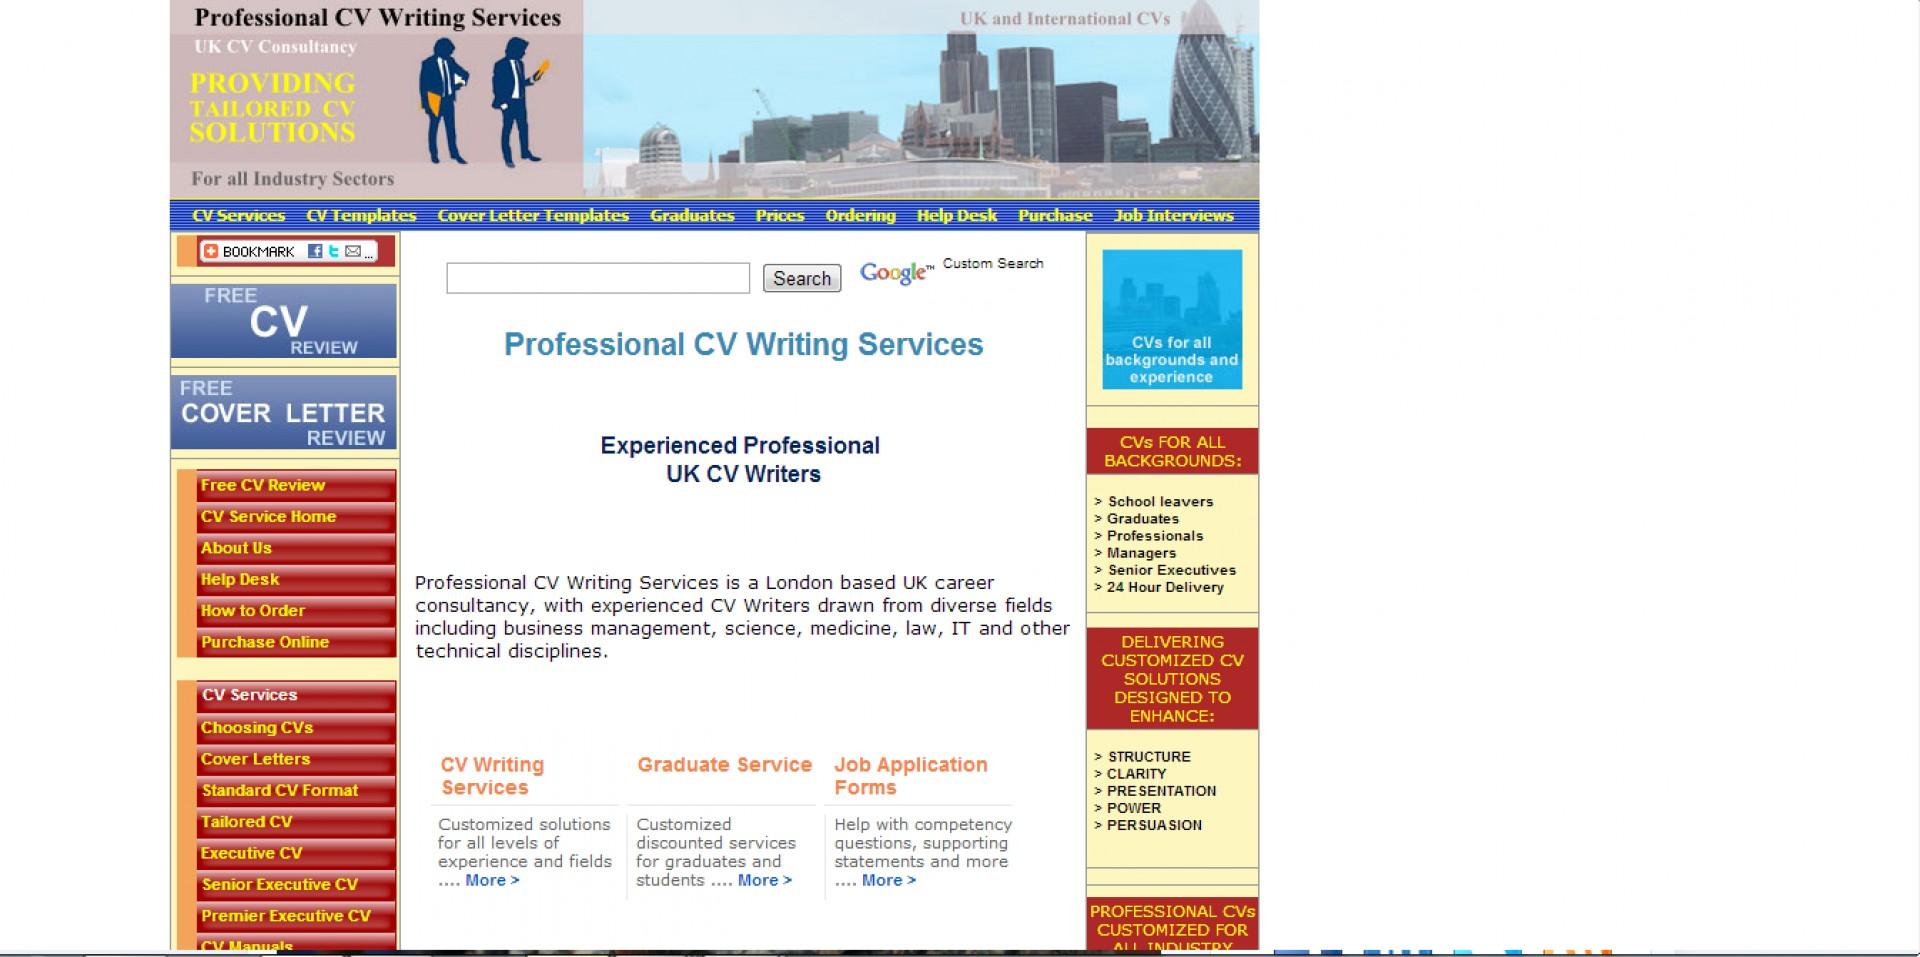 021 Essay Example Professional Cv Writingservices Co Uk Review Wonderful Service College Services Graduate School 1920